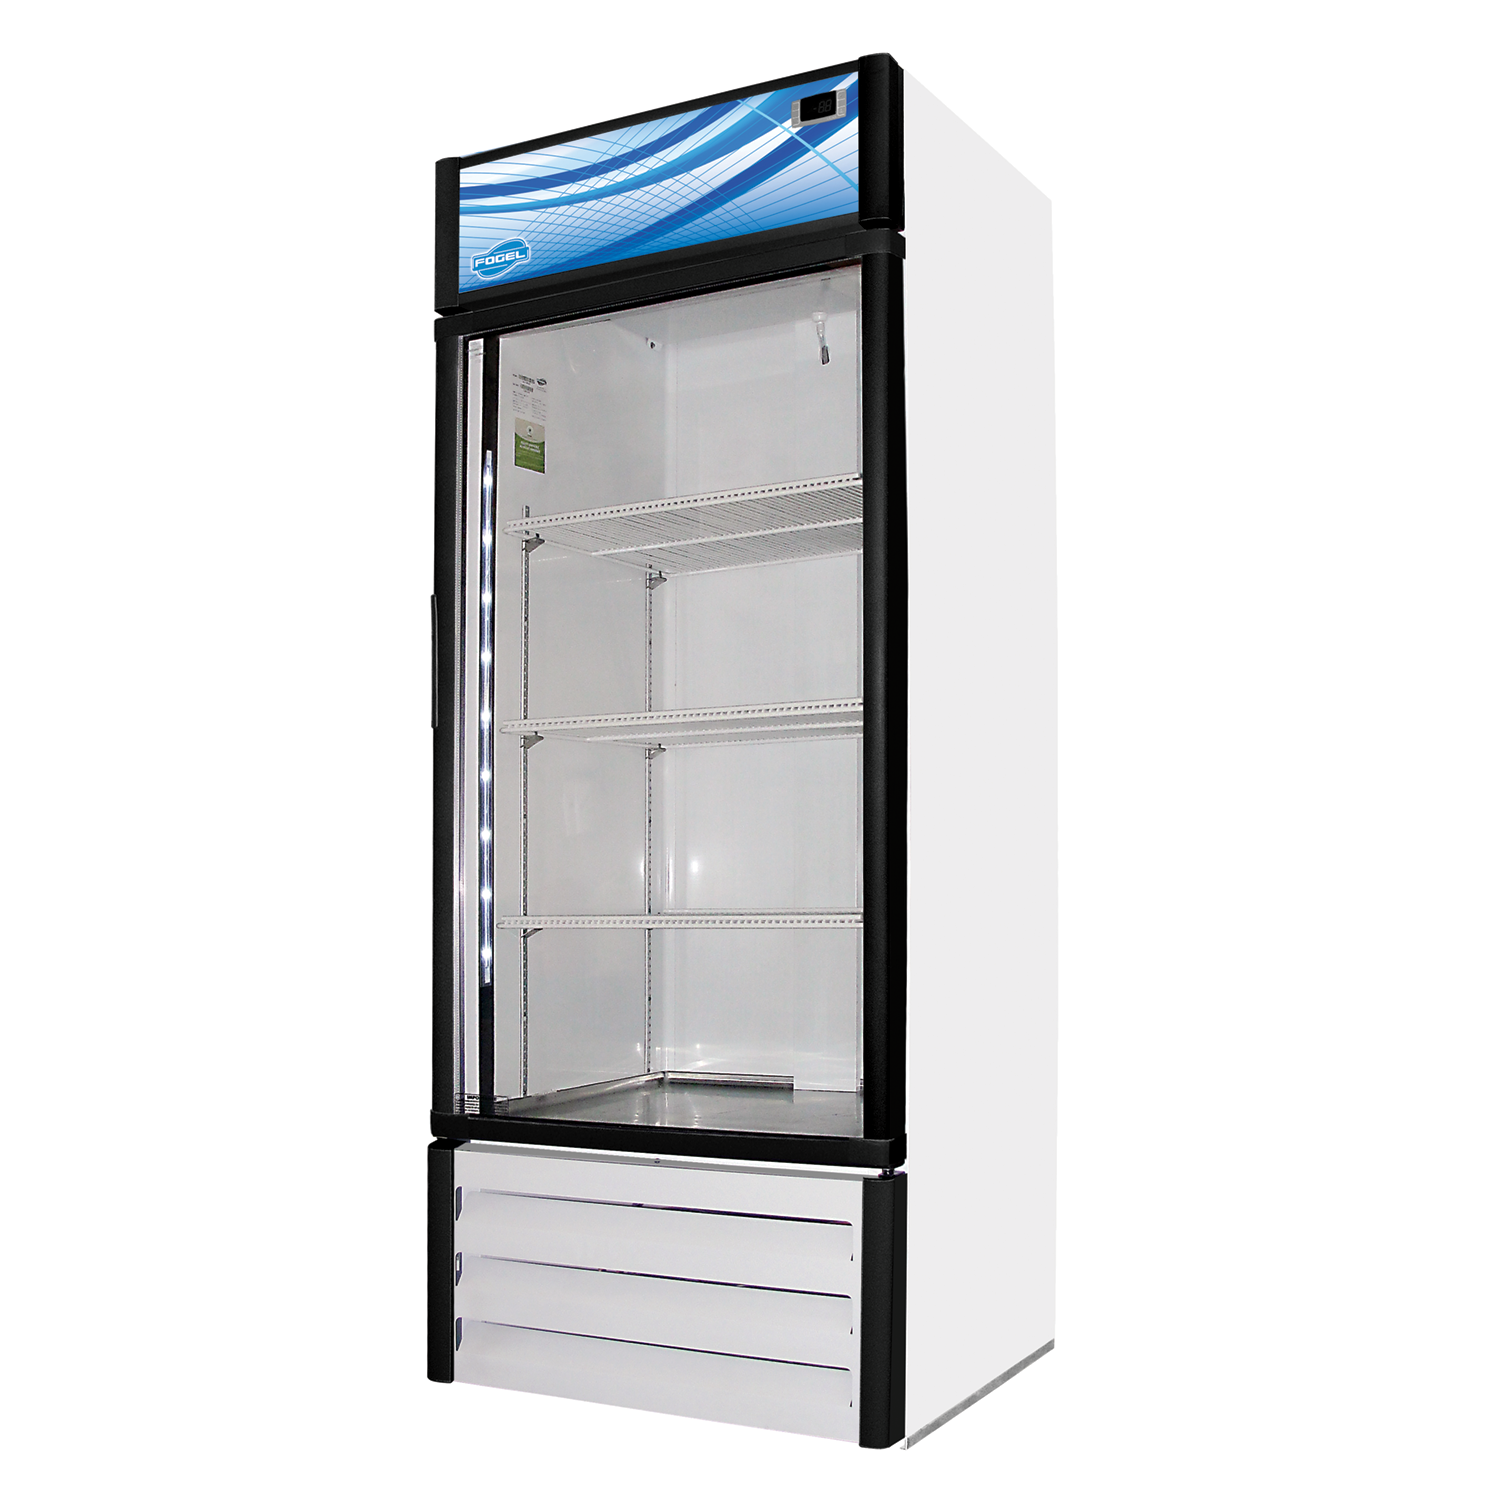 Fogel USA VR-17-RE-HC refrigerator, merchandiser